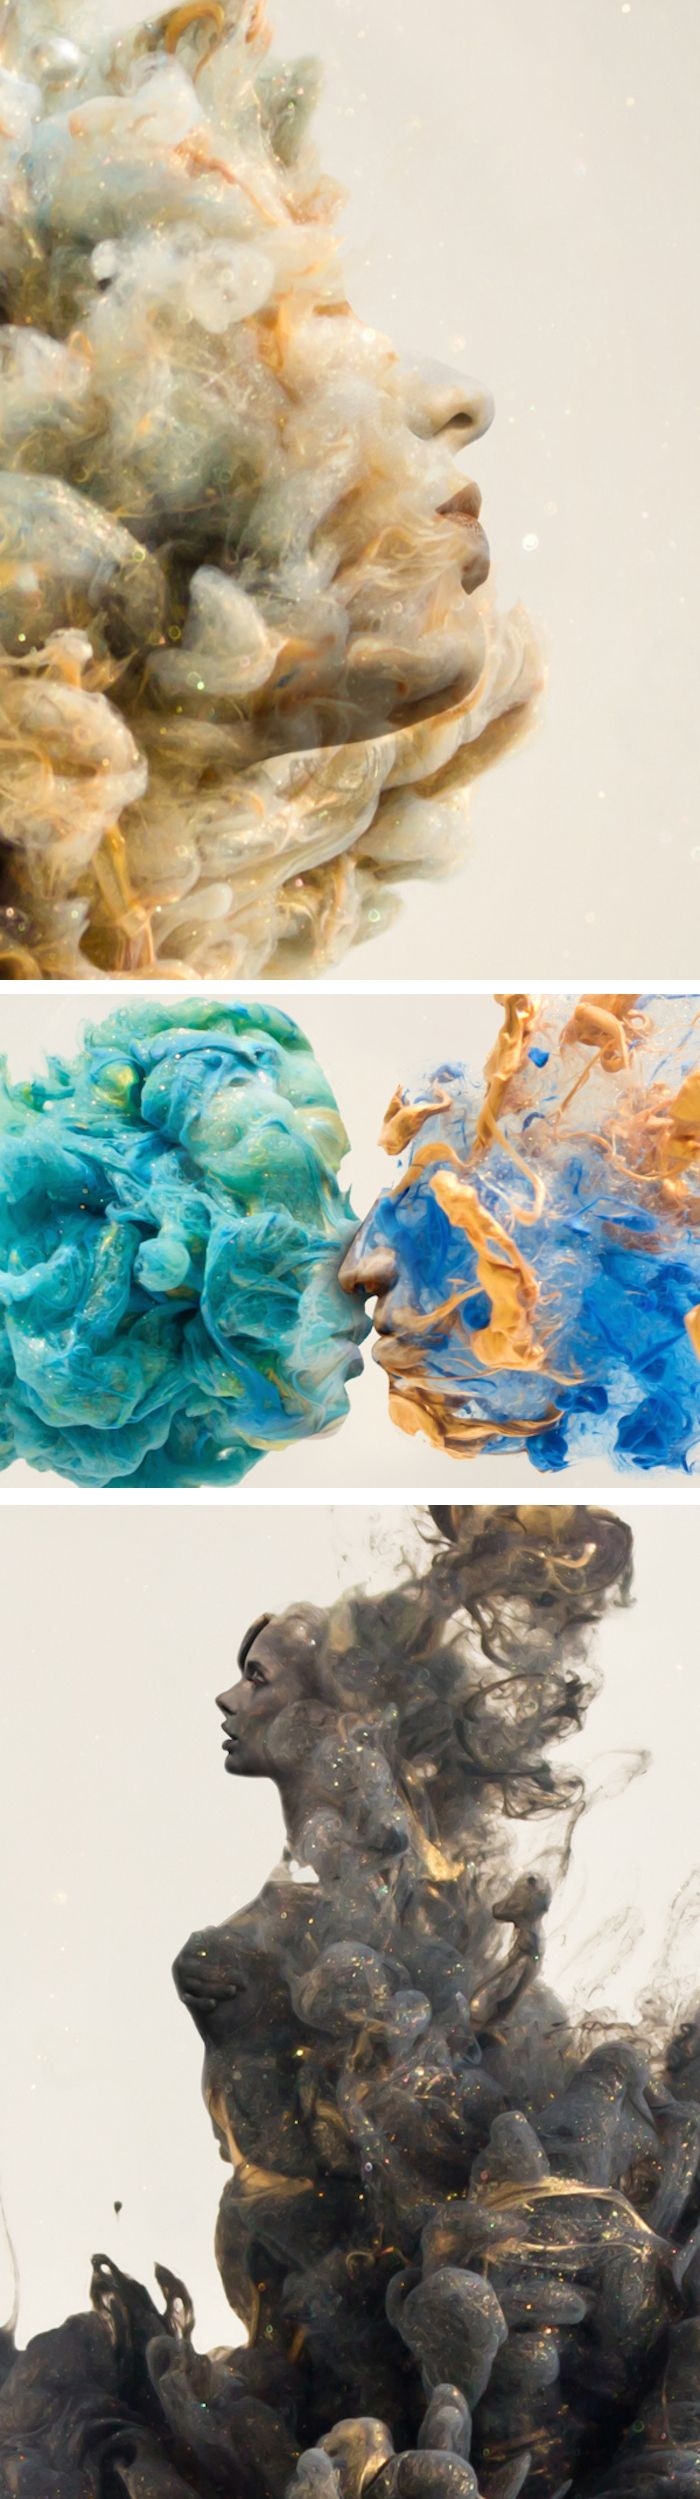 Portraits in Swirls of Paint / Chris Slabber. Pinned by Daniëlle Bergman Art - www.daniellebergman.com / www.pinterest.com/dbergmanart